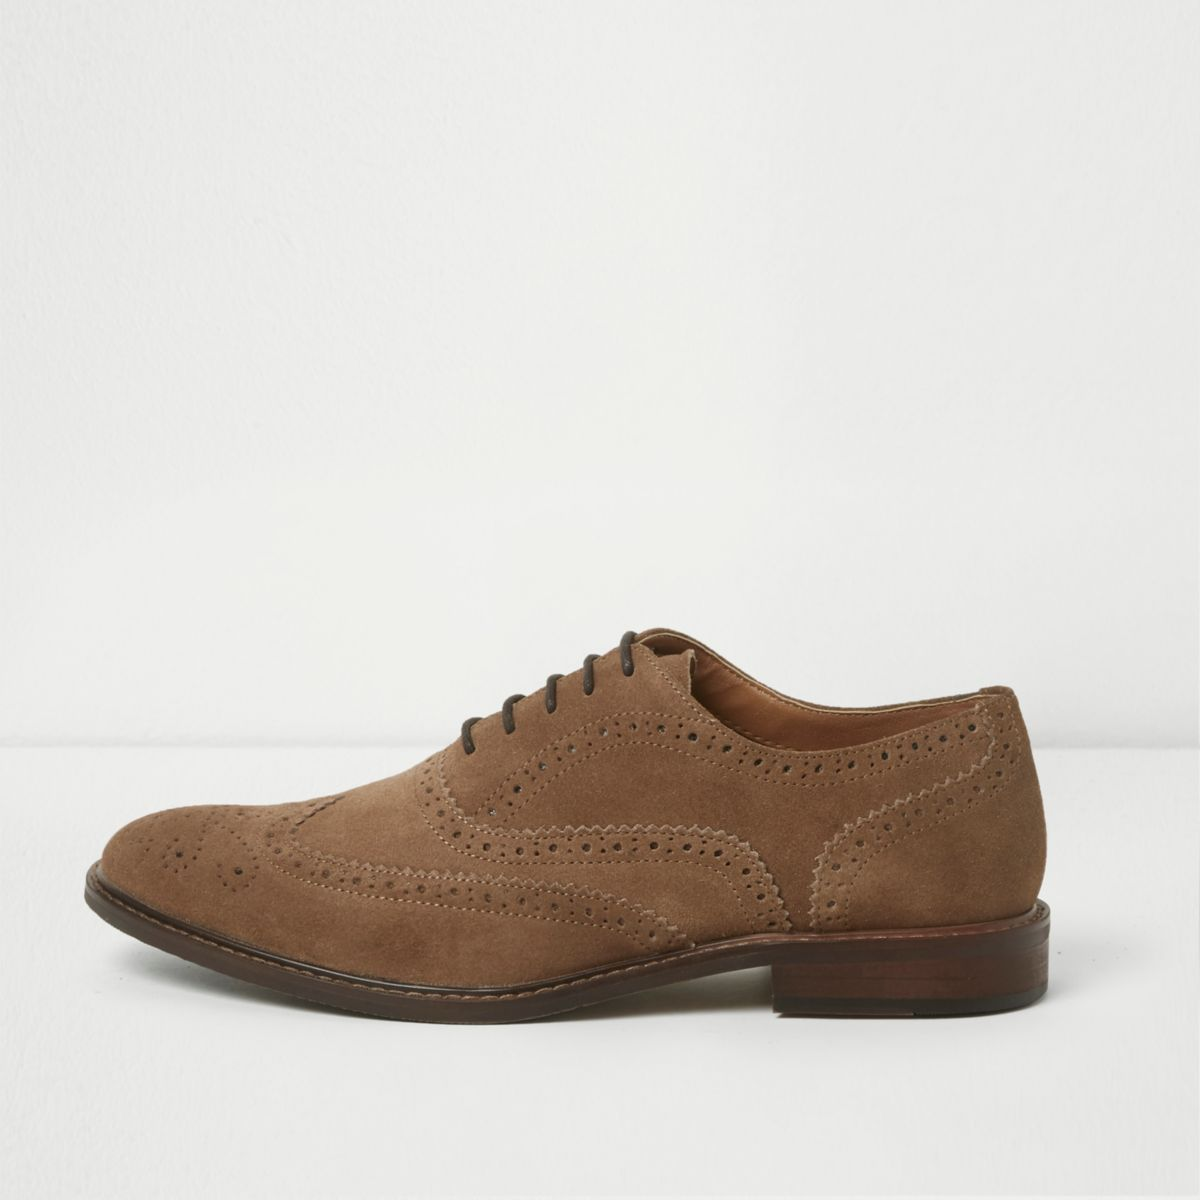 Stone suede lace-up brogues